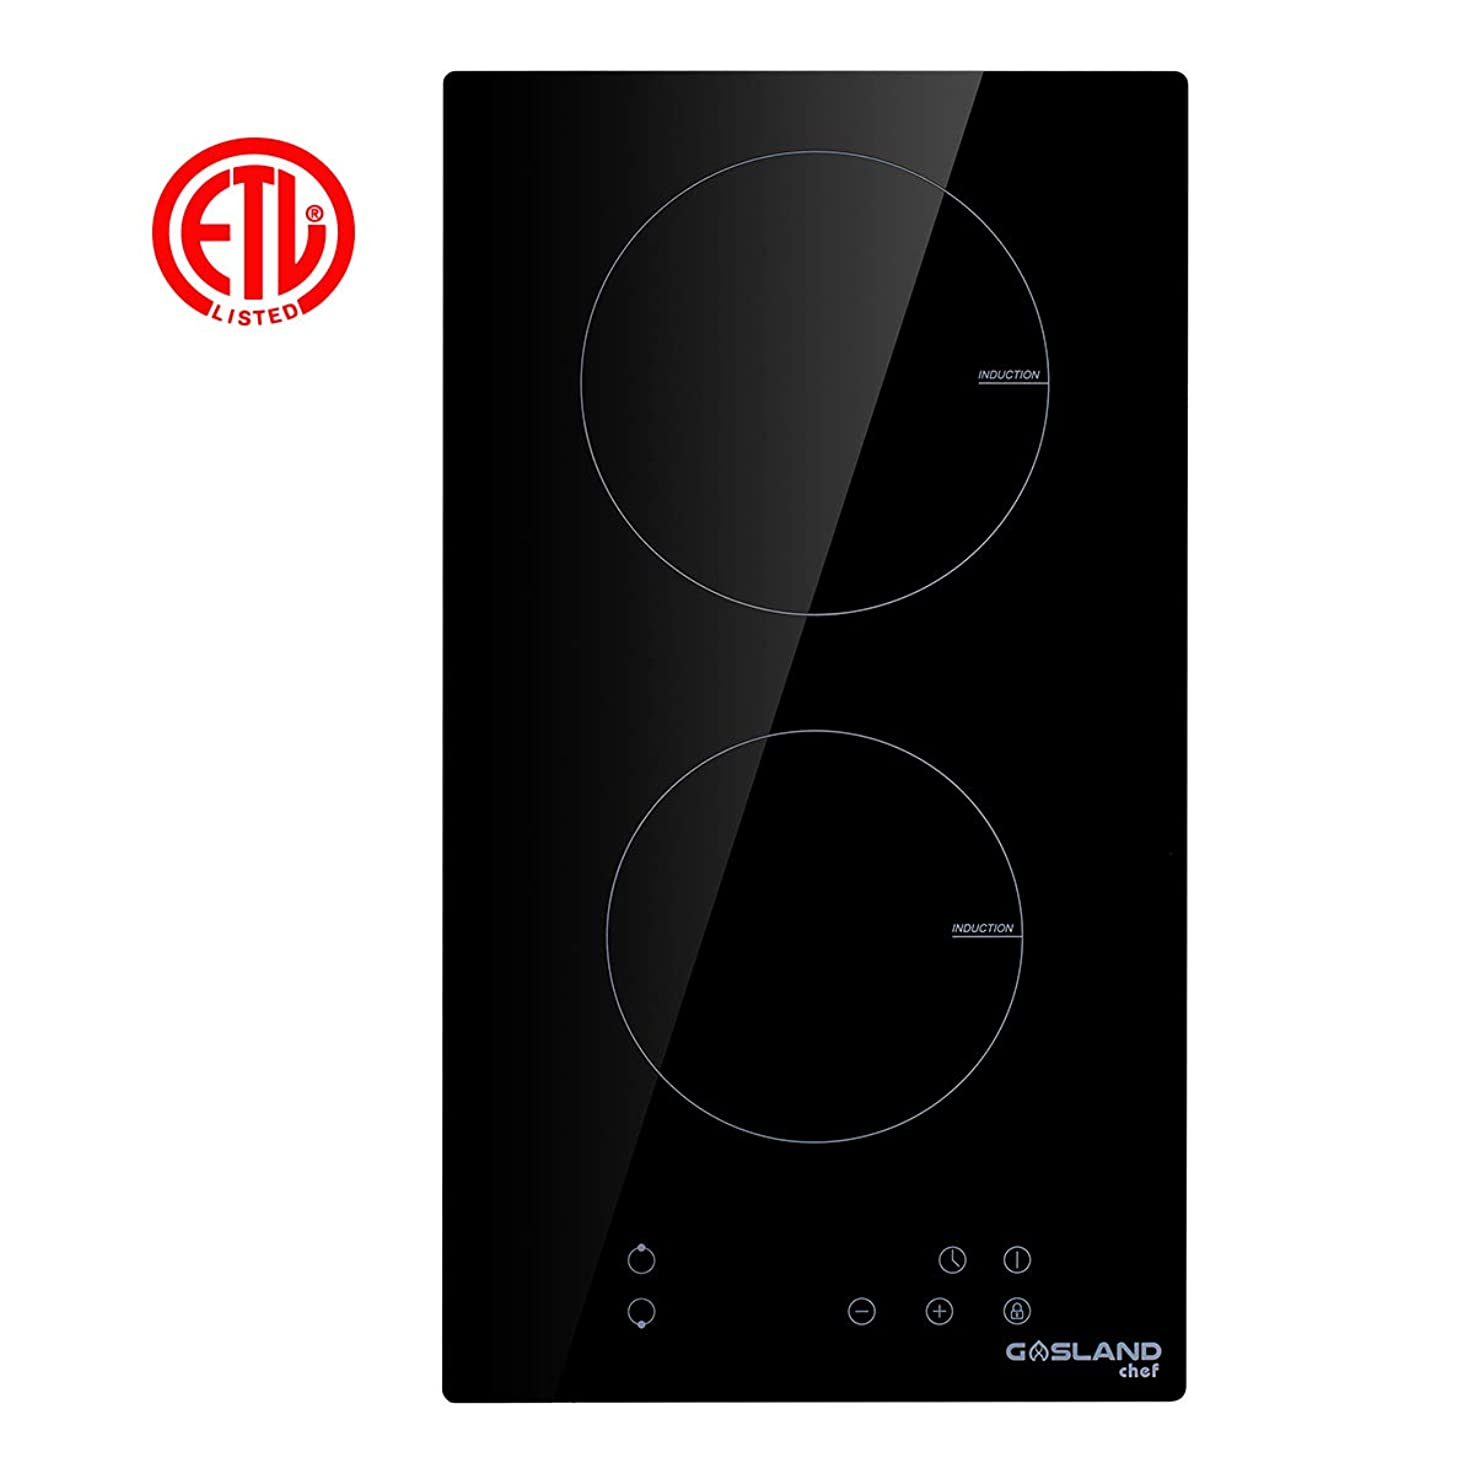 Induction Cooktop, Gasland chef IH30BF Built-in Induction Cooker, Vitro Ceramic Surface Electric Cooktop, 12'' Electric Stove With 2 Burners, ETL Safety Certified, Kids Safety Lock & Easy To Clean gdivehpwbcqfa1